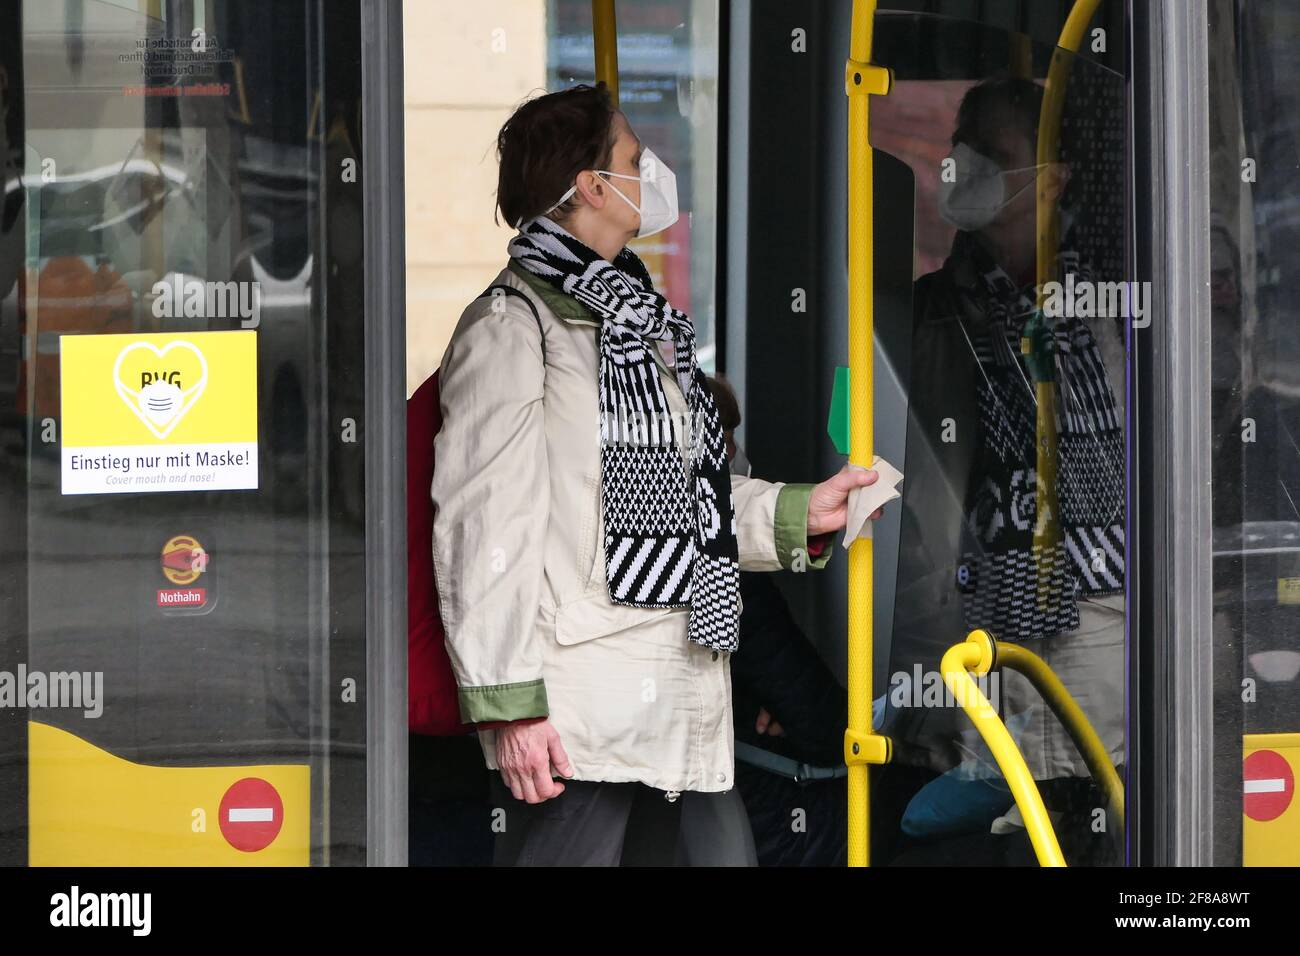 Berlin, Germany. 12th Apr, 2021. A passenger wearing a face mask stands on a bus in Berlin, capital of Germany, on April 12, 2021. More than three million COVID-19 infections have been registered in Germany on Monday since the outbreak of the pandemic, according to the Robert Koch Institute (RKI). Credit: Stefan Zeitz/Xinhua/Alamy Live News Stock Photo